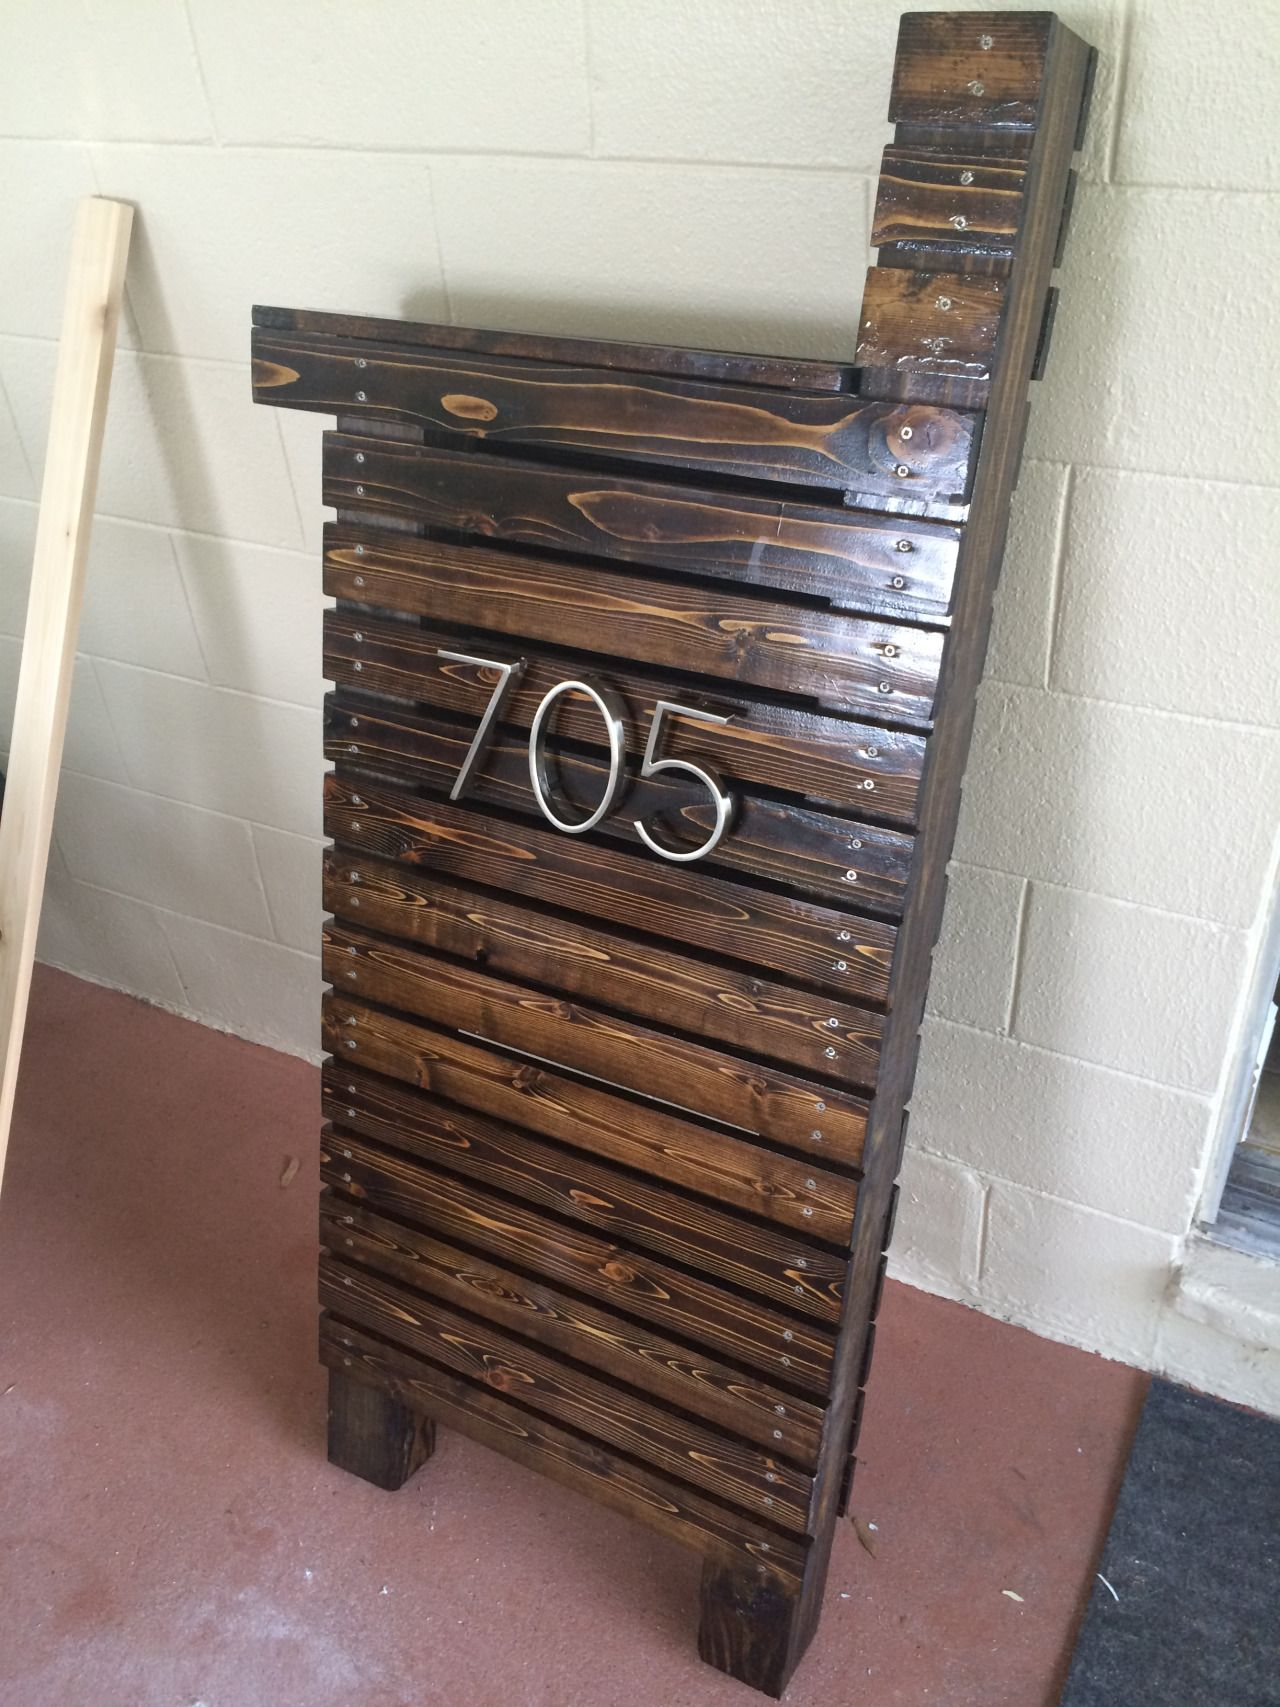 modern mailbox ideas. Create An Arty Wooden Mailbox Easily With This Great Tutorial. Some Stain, Fence Posts, And Cedar Wood. So Simple Beautiful, A True Piece Of Art. Modern Ideas